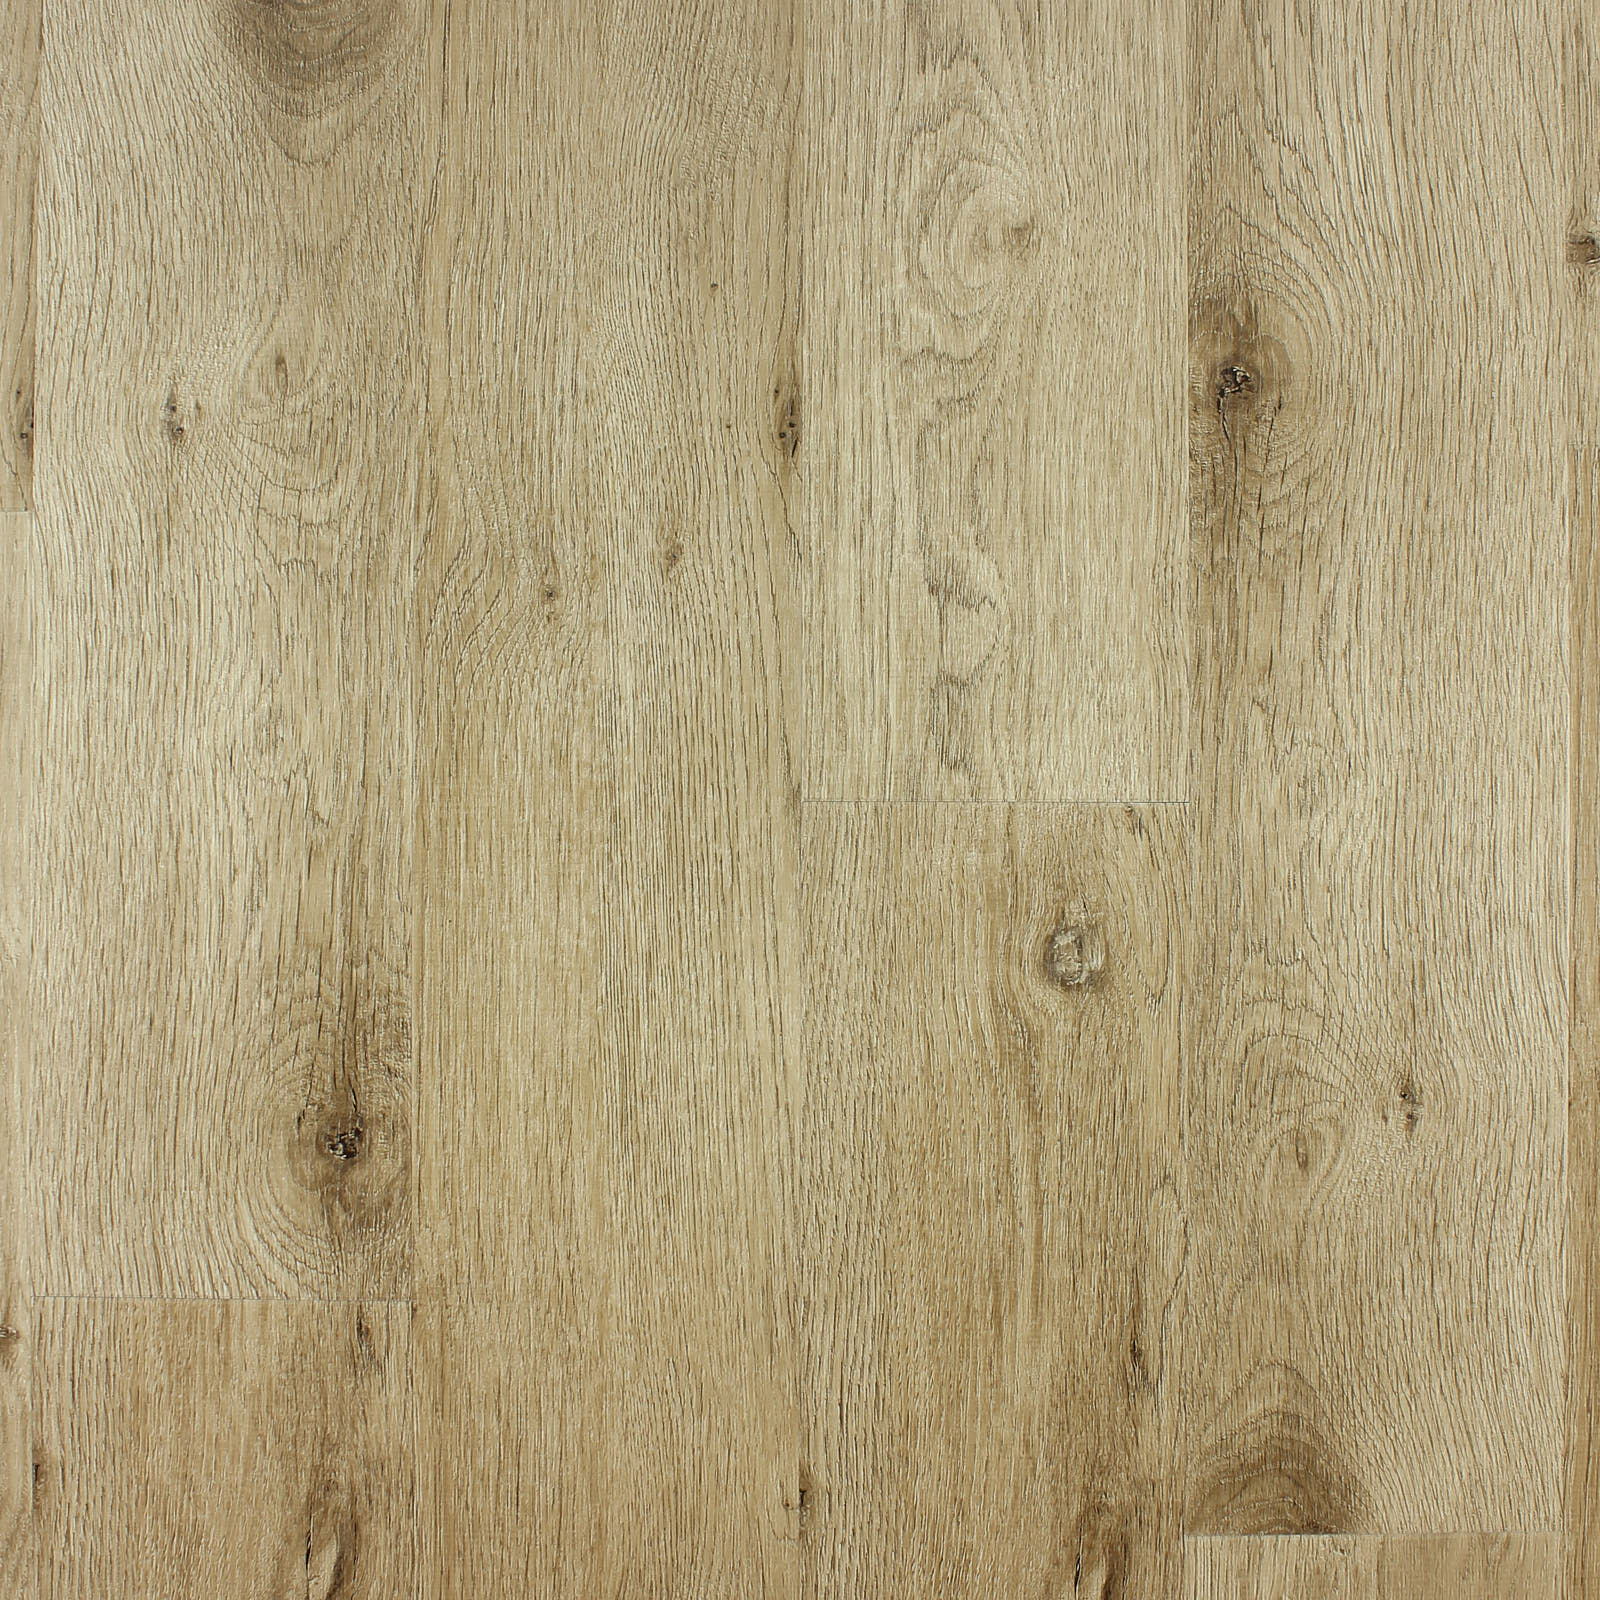 Tribeca Timber Vinyl Plank Flooring